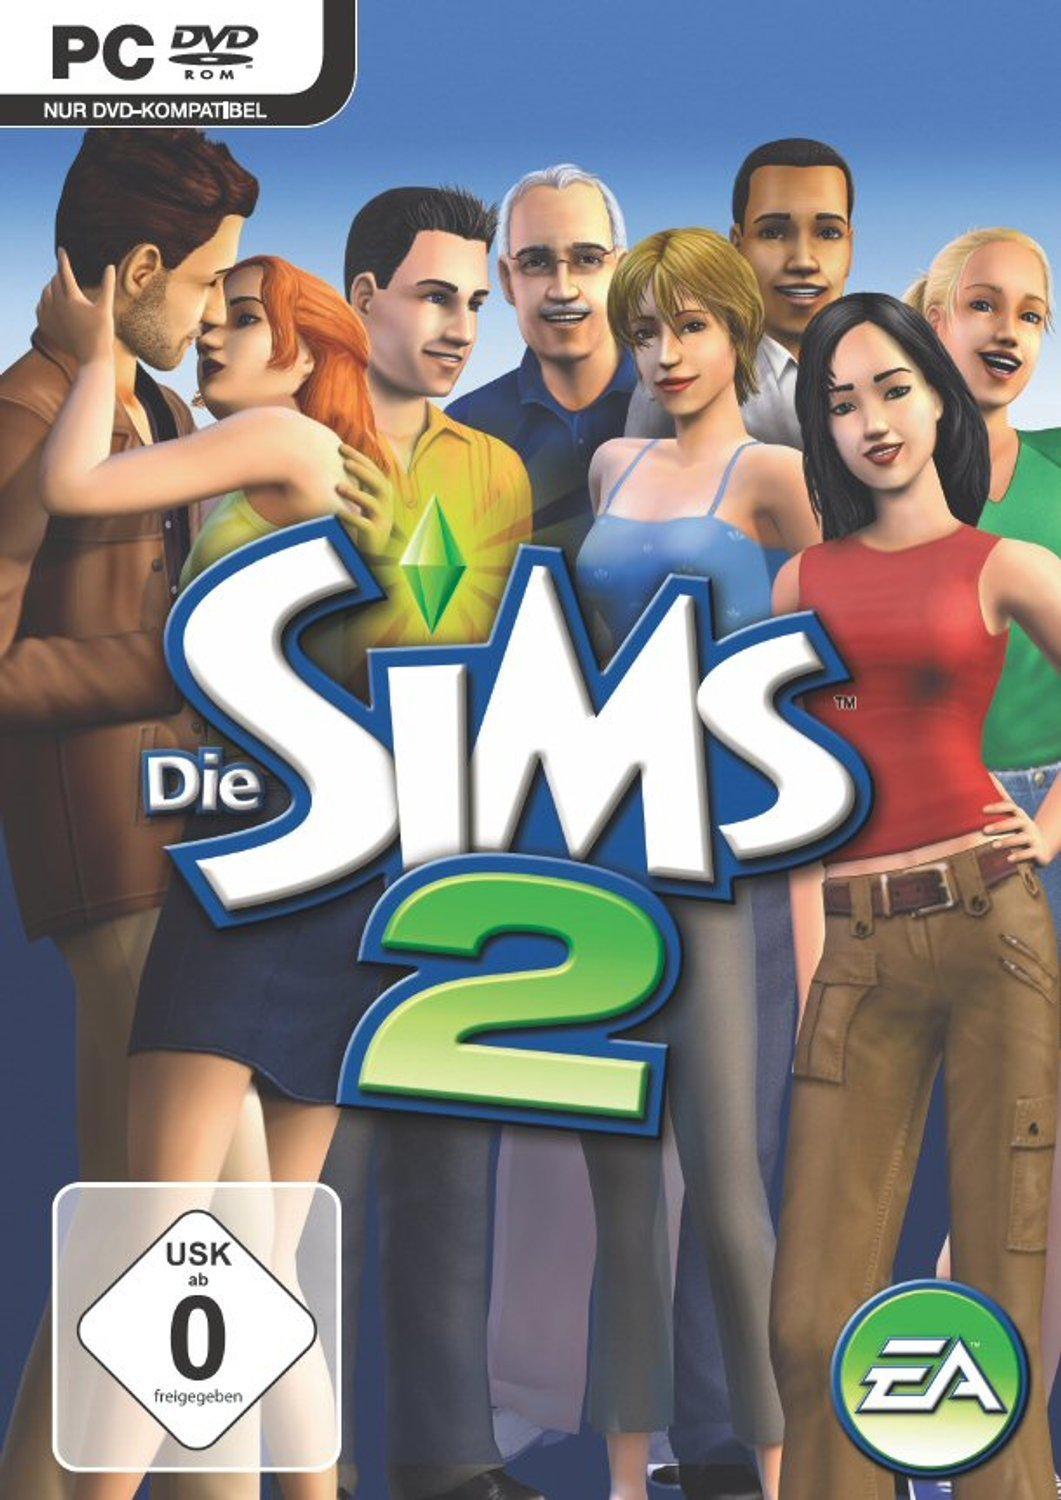 Sims 2 frisuren download anleitung